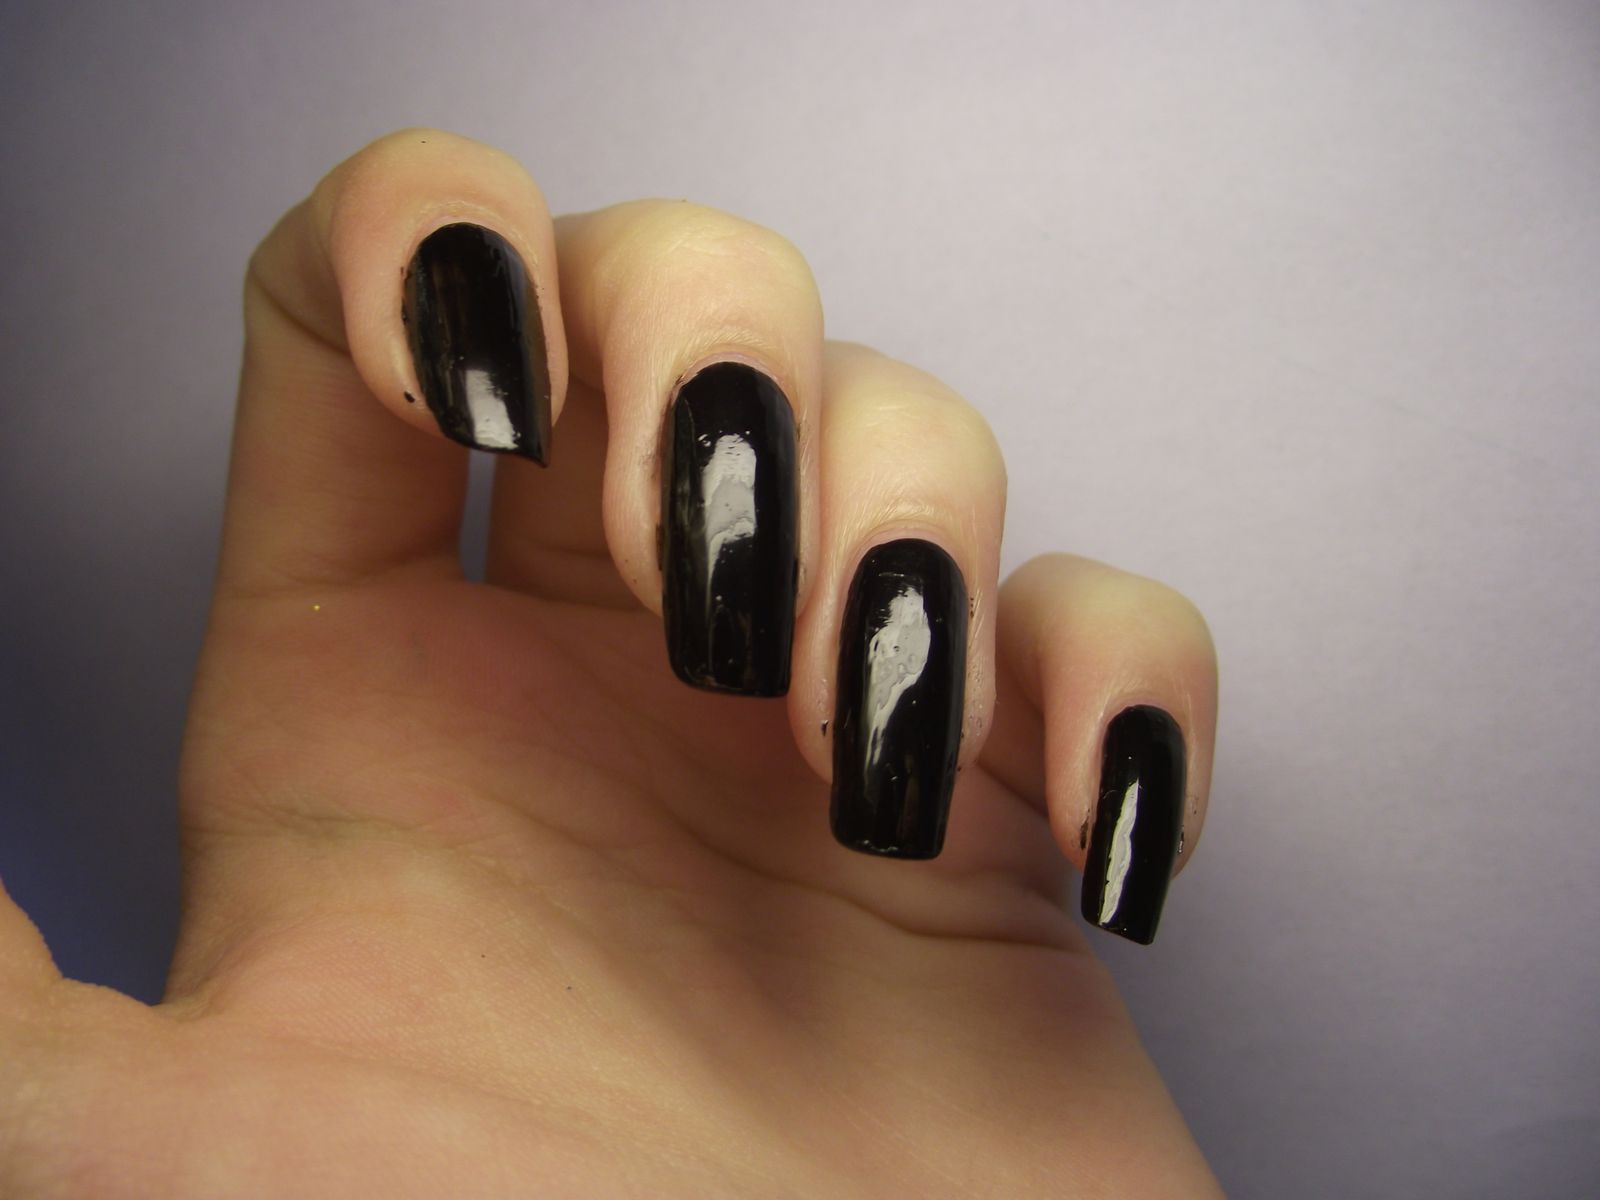 [Nailstorming] Des ongles assortis au tapis rouge